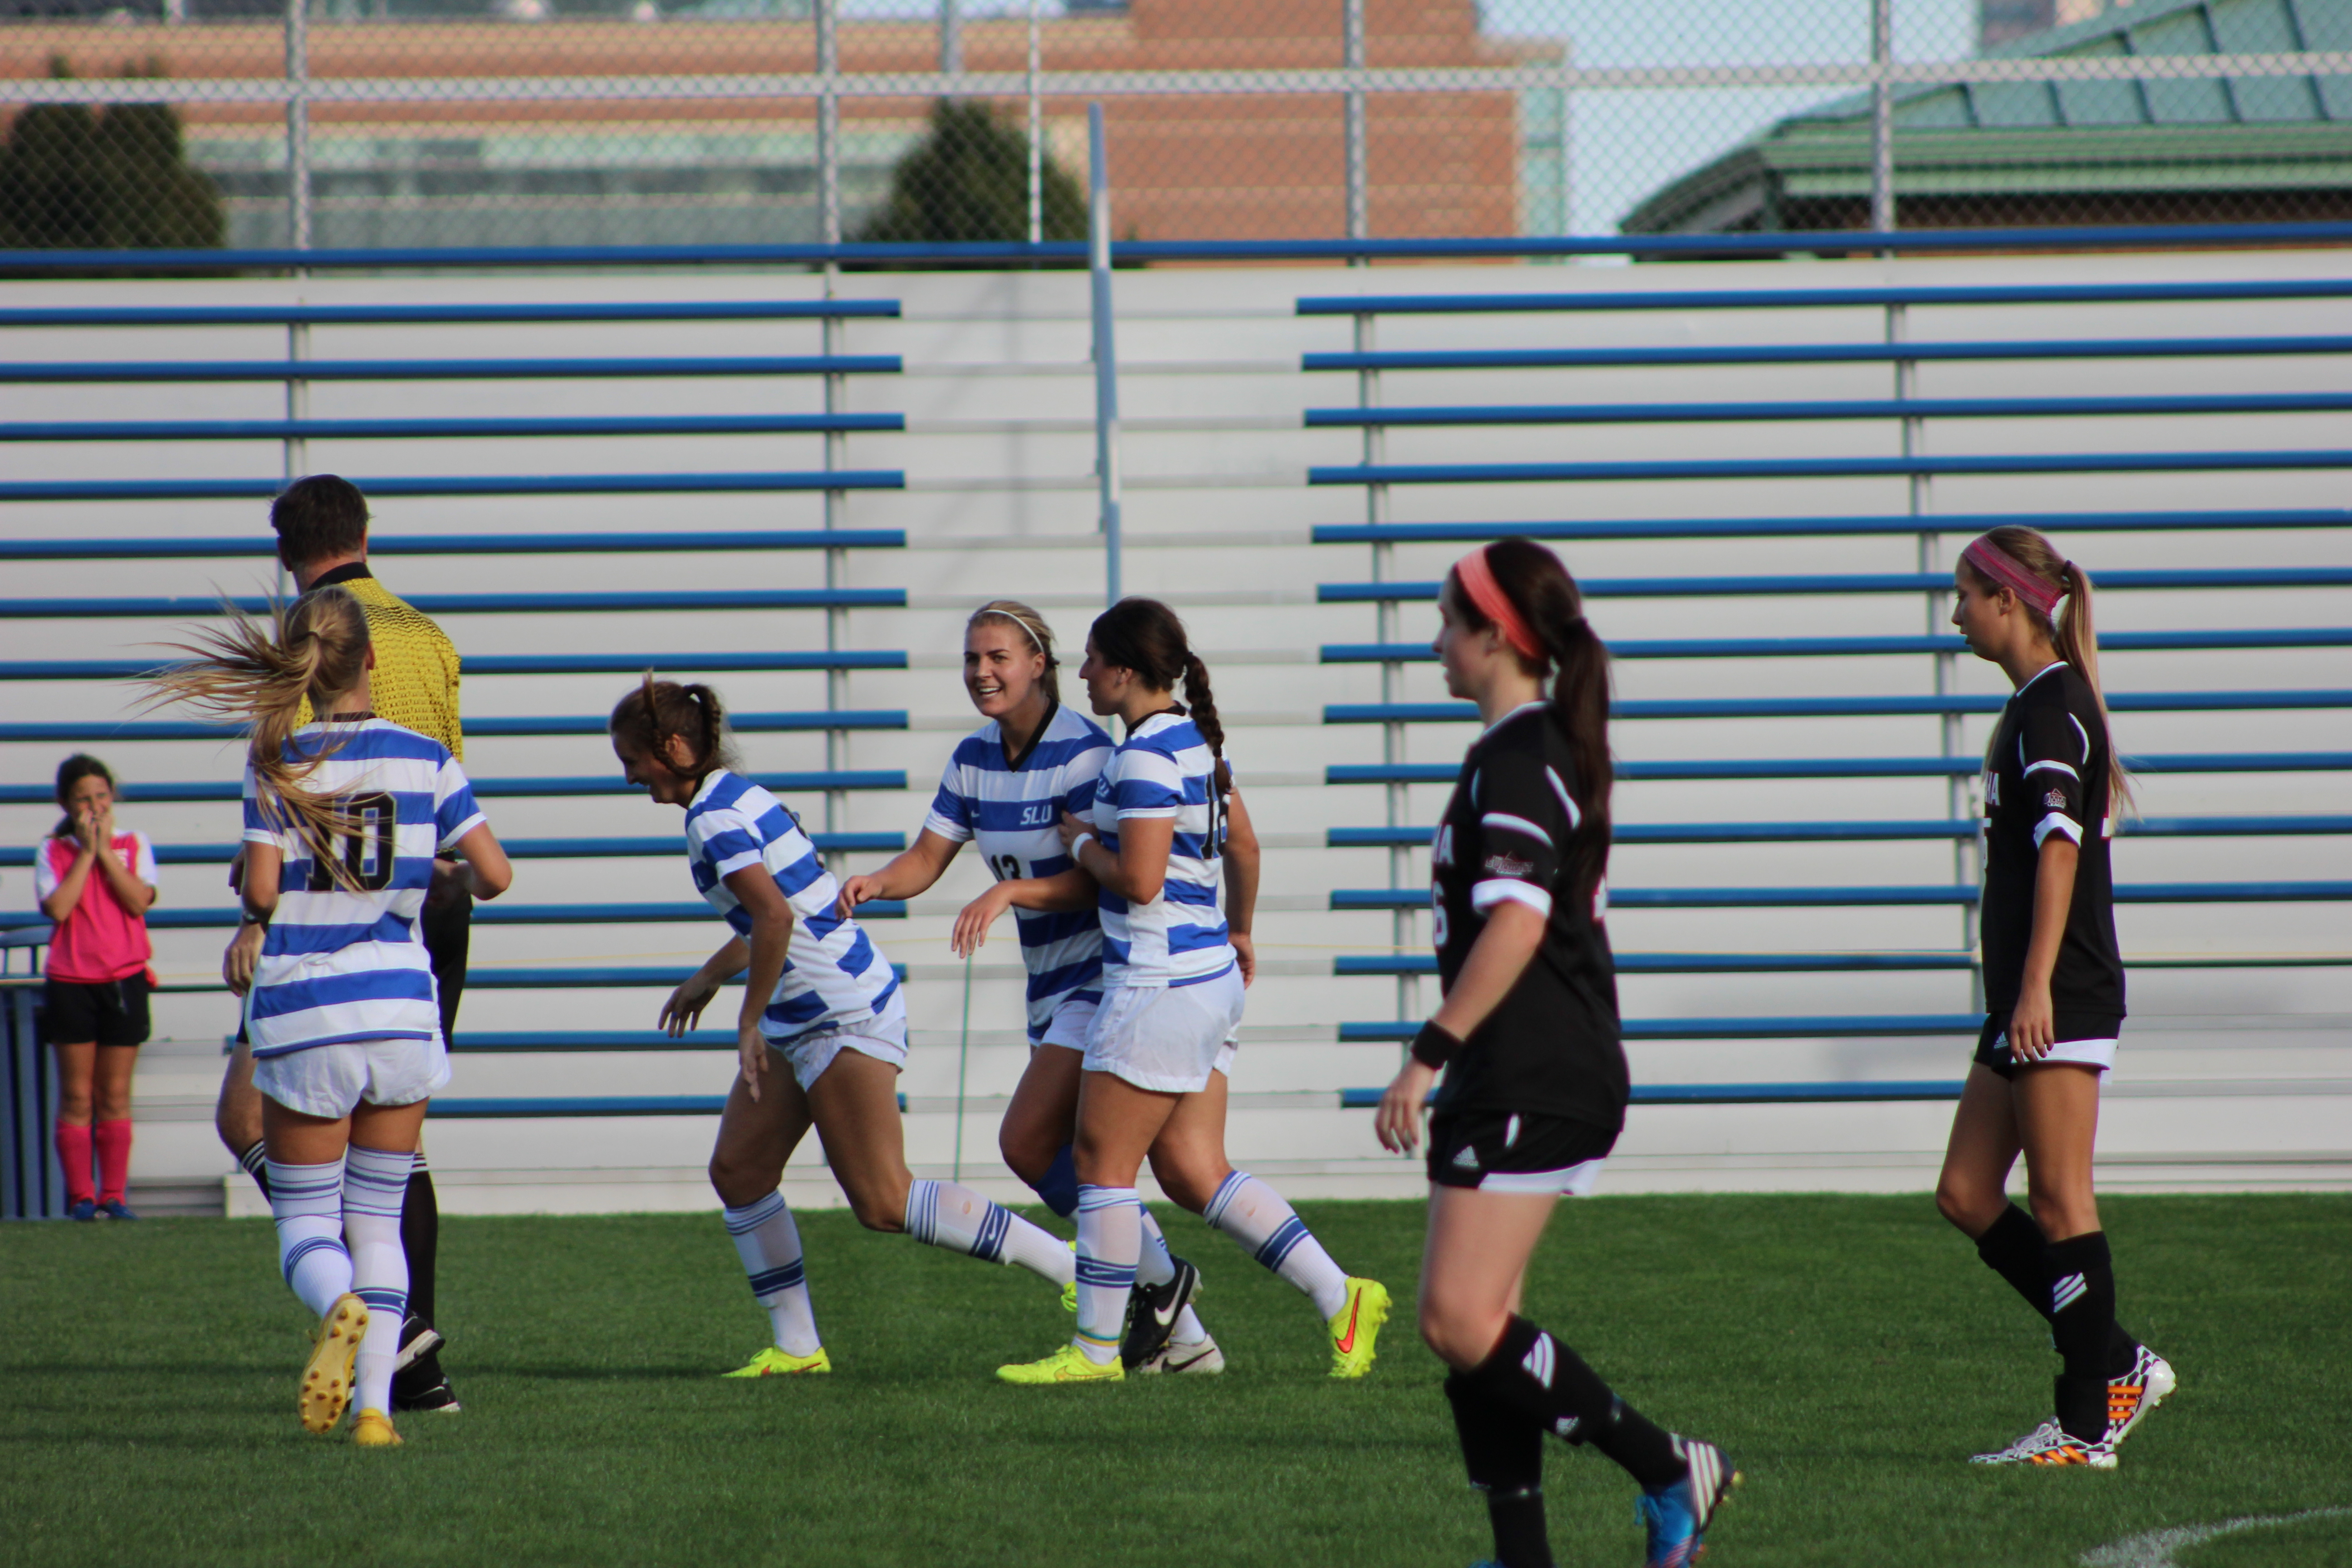 Celebrate: The women's soccer team celebrates one of four goals in a game against UNO. The Billikens scored two goals in each half of the contest. Emma Kelly / Staff Photographer